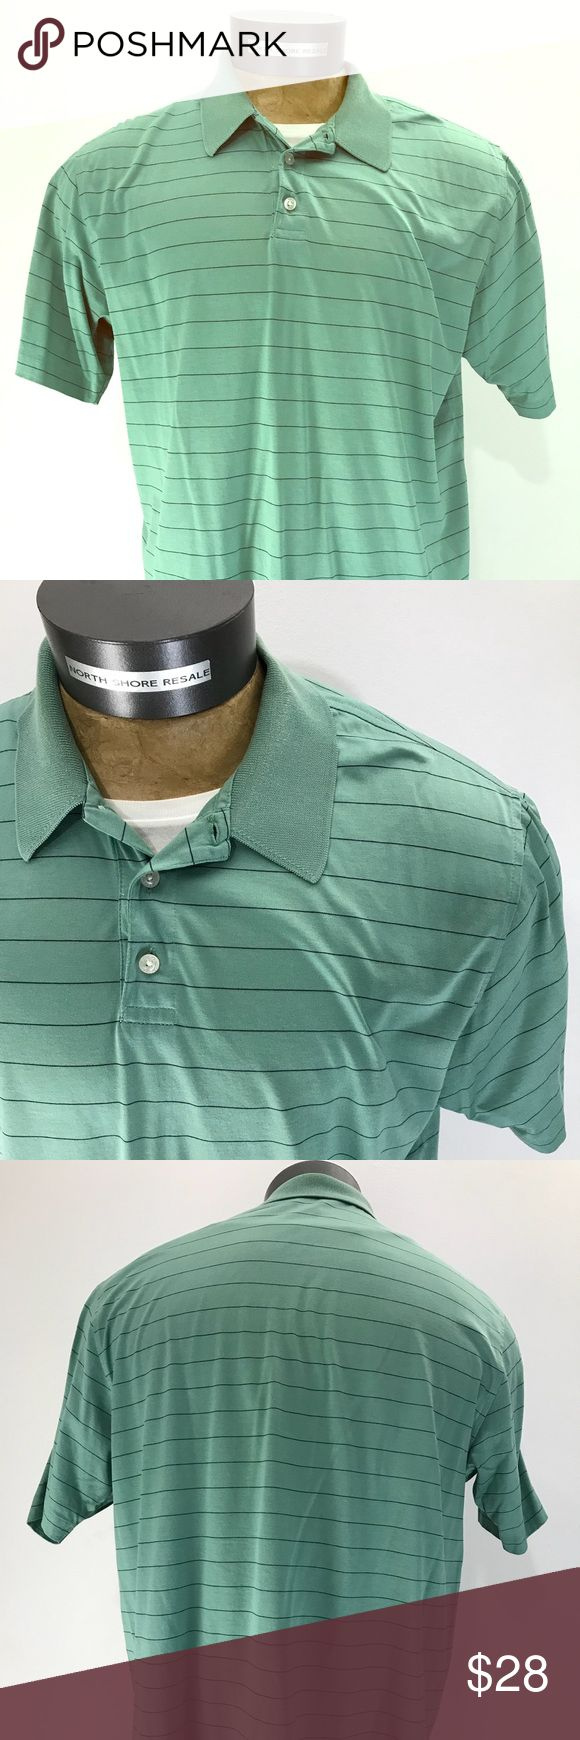 346 Brooks Brothers Mercerized Cotton Polo Shirt 346 Brooks Brothers Mercerized Cotton Polo Shirt Green Navy Pinstripes Brooks Brothers Shirts Polos